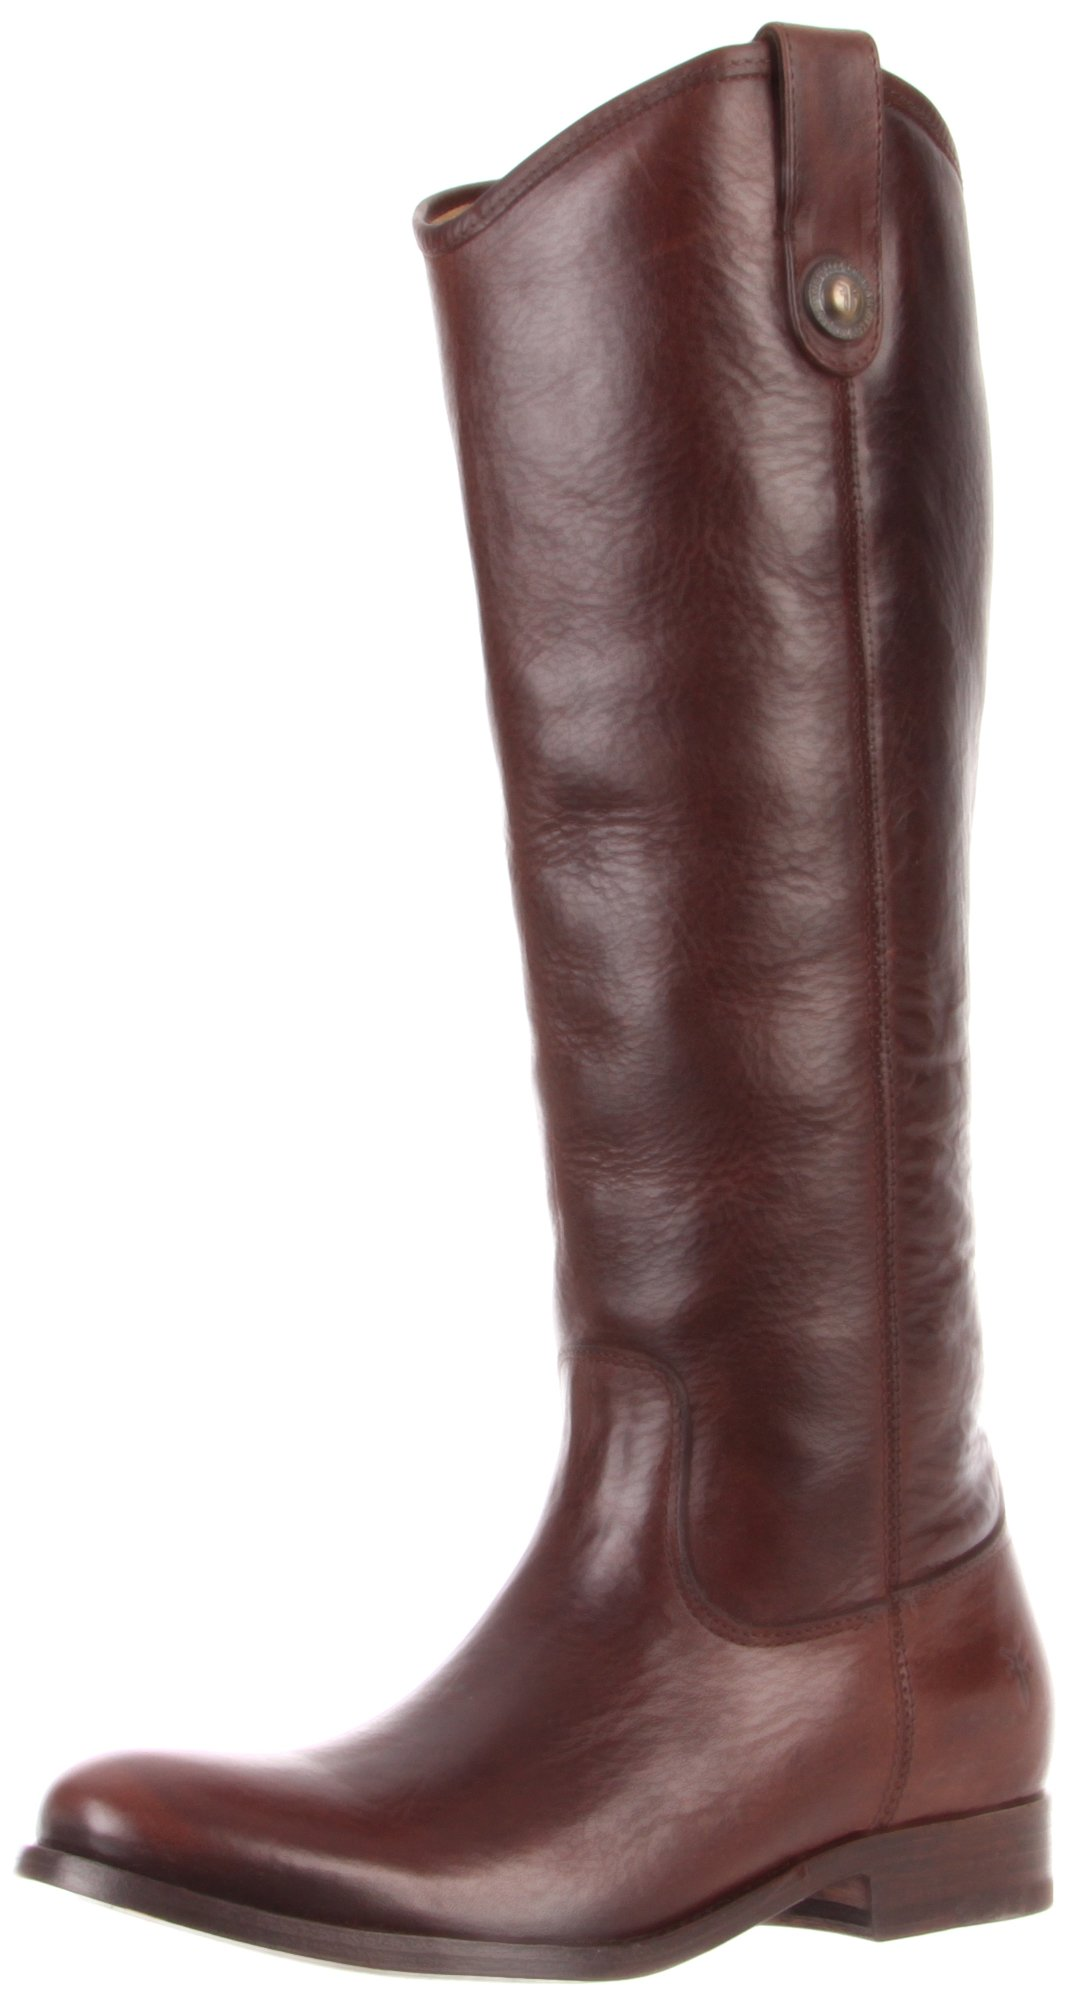 FRYE Women's Melissa Button Boot, Dark Brown Soft Vintage Leather, 6 M US by FRYE